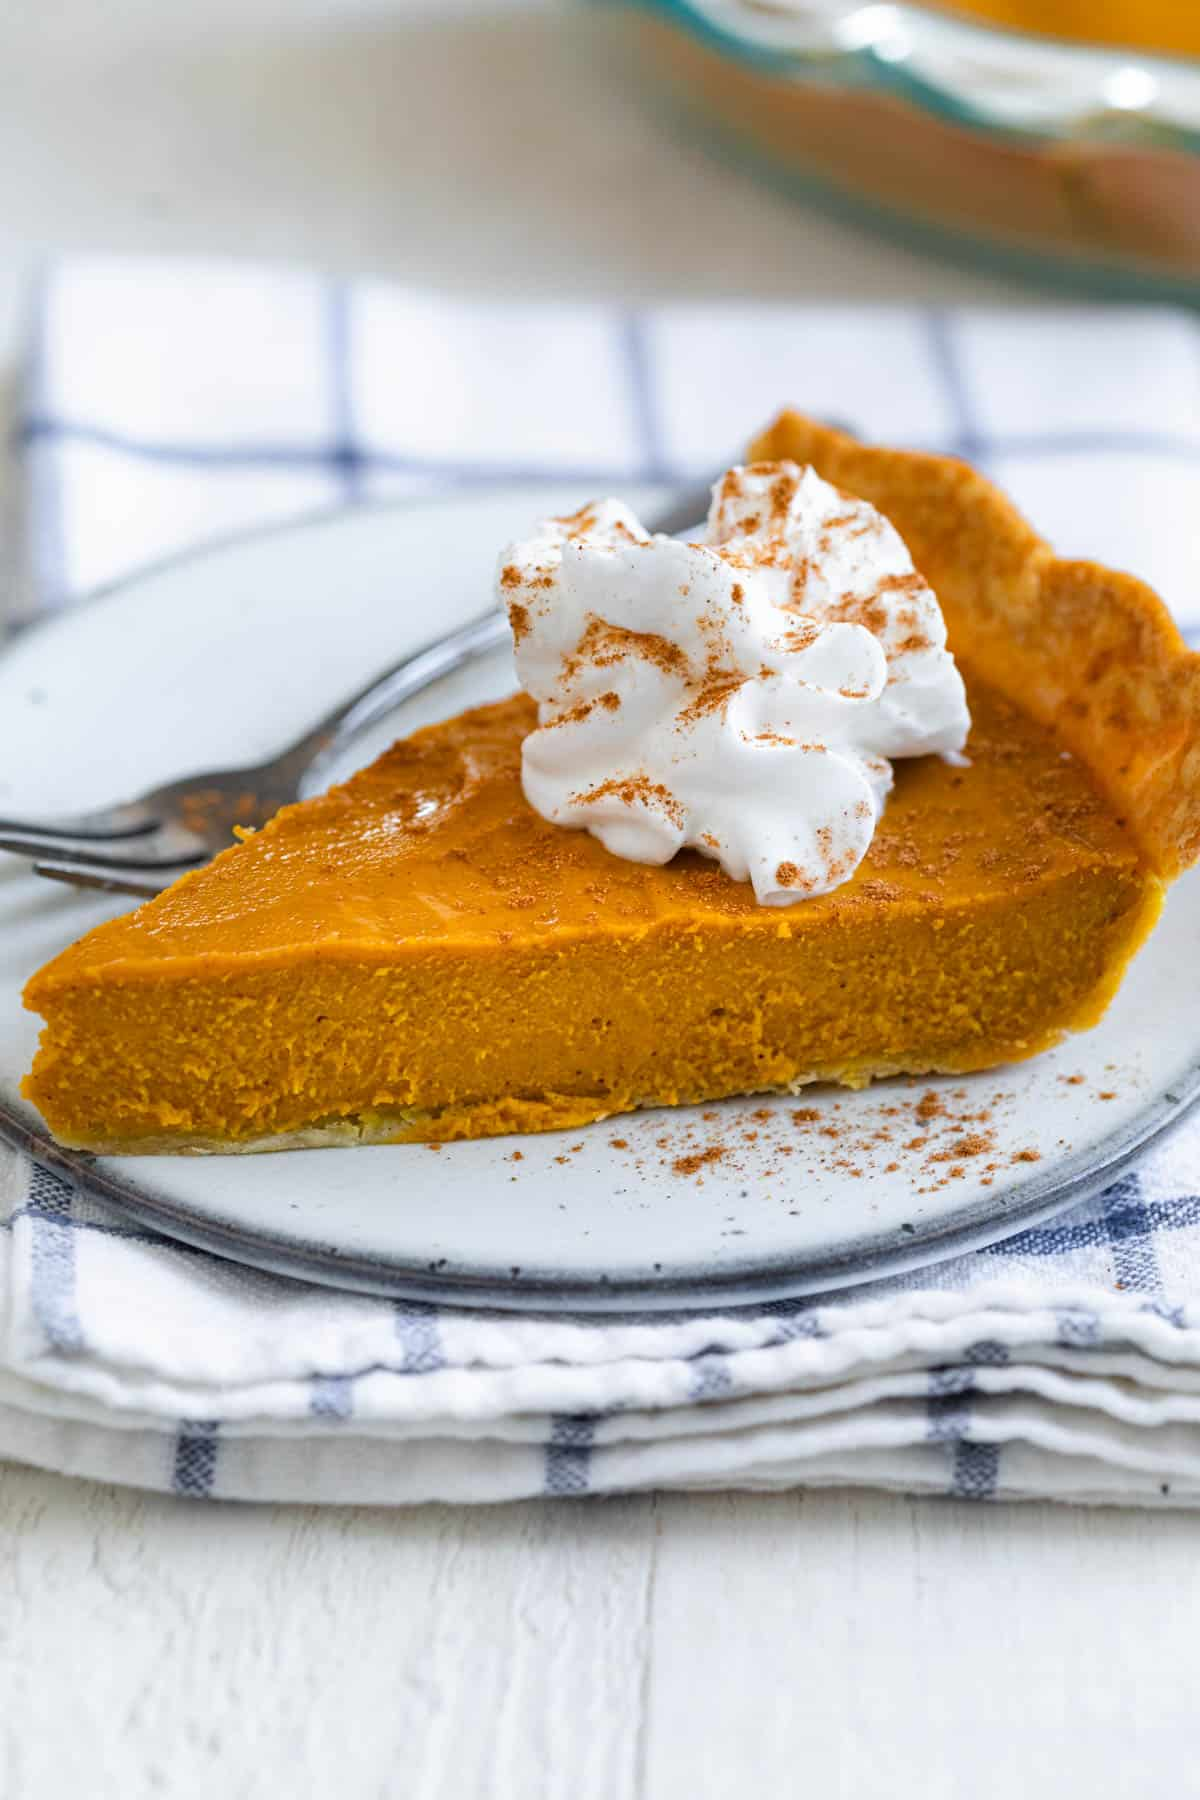 Slice of pumpkin pie on a small plate with whipped cream on top